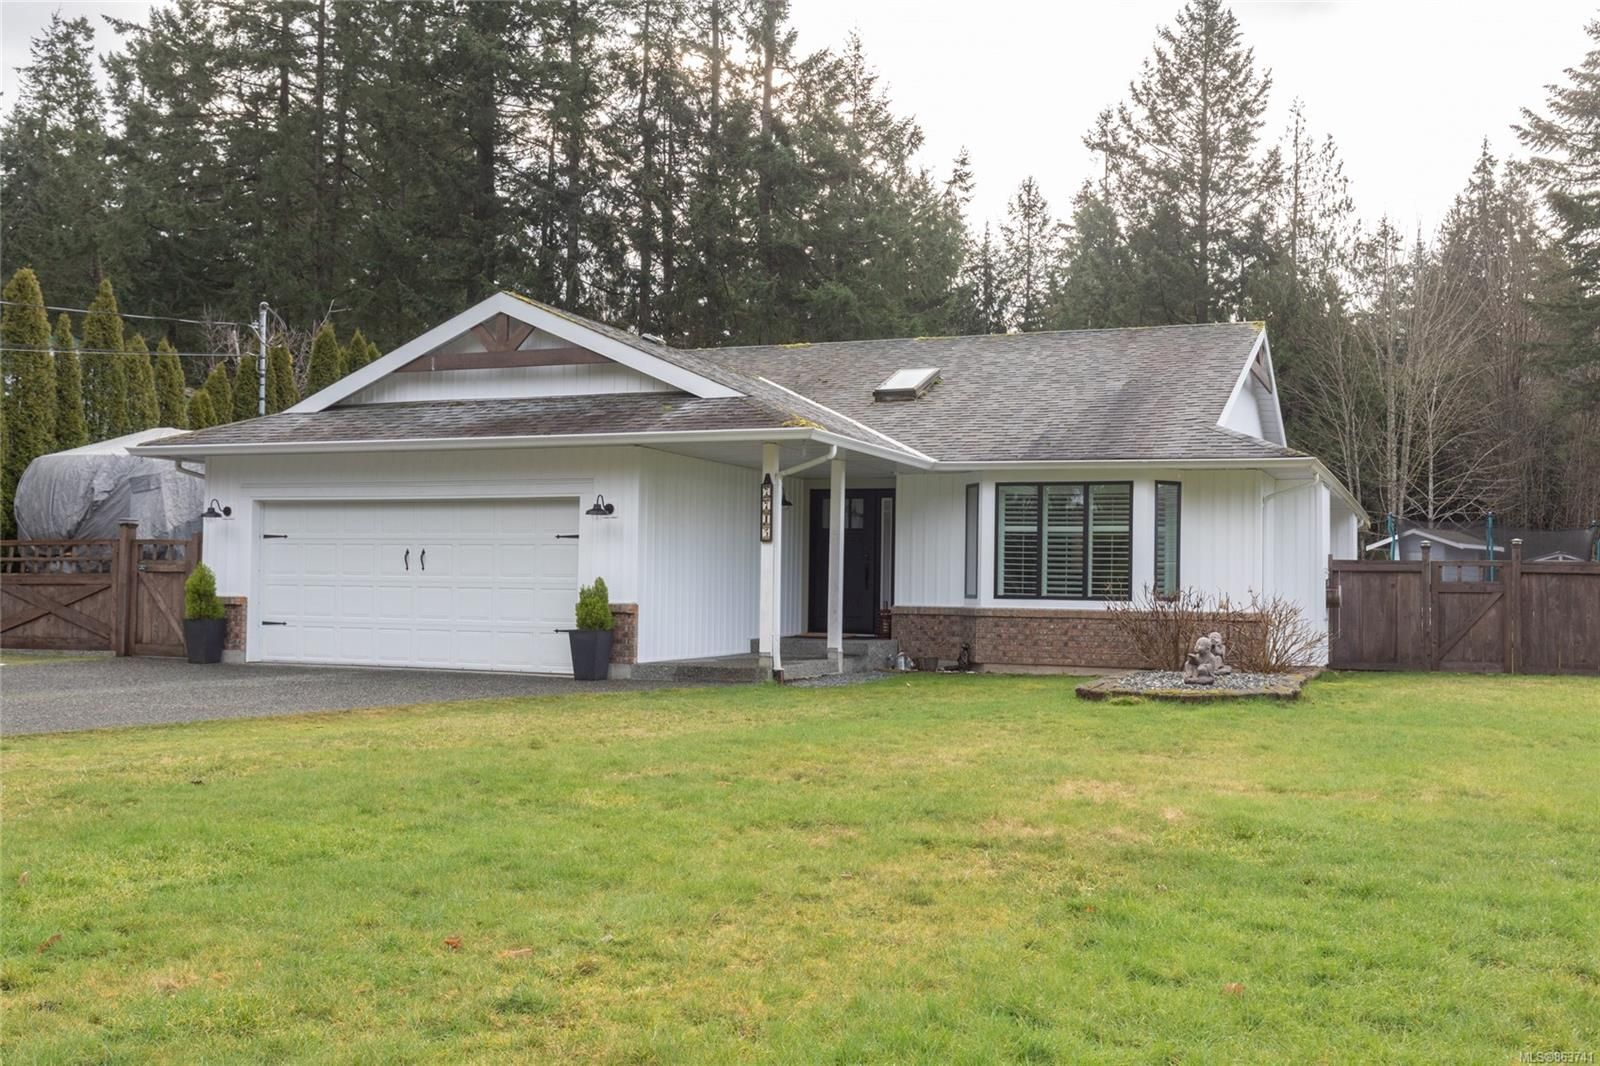 Main Photo: 7715 Clark Dr in : Na Upper Lantzville House for sale (Nanaimo)  : MLS®# 863741